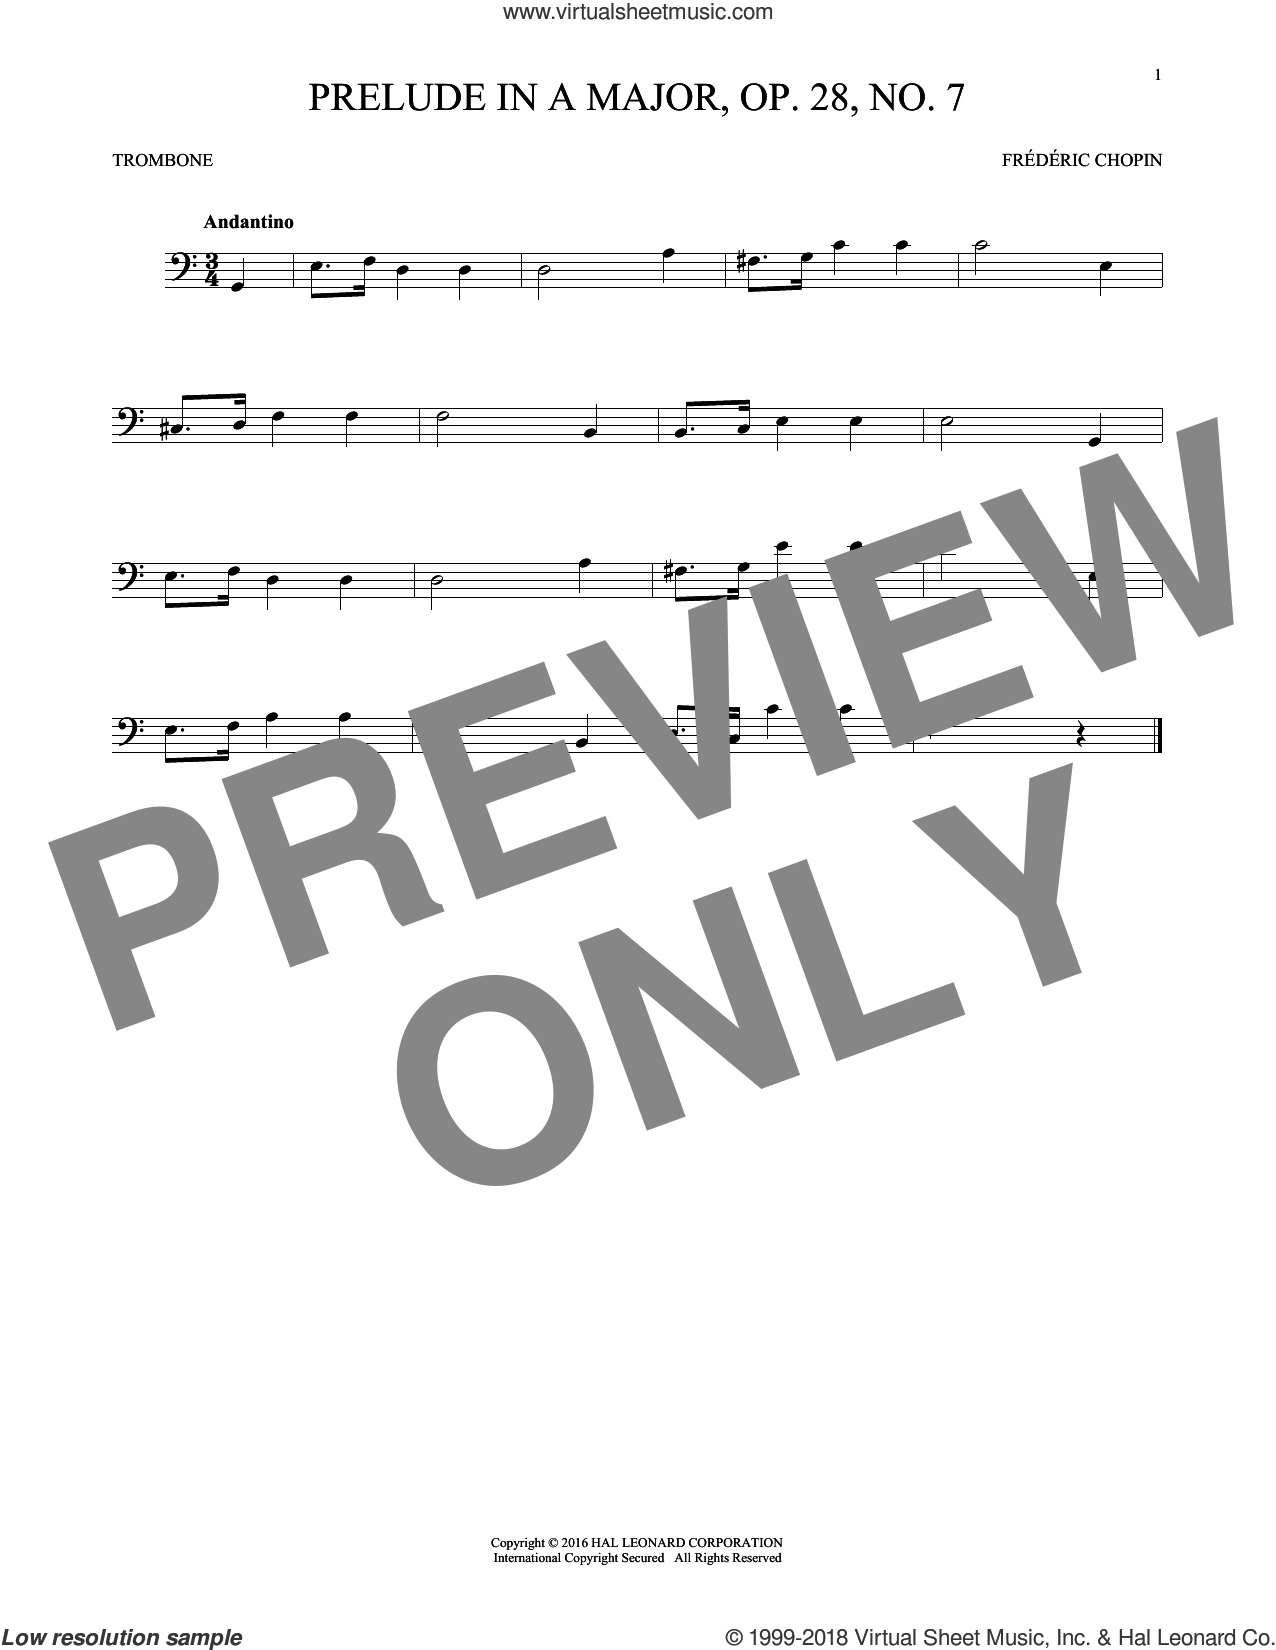 Prelude In A Major, Op. 28, No. 7 sheet music for trombone solo by Frederic Chopin, classical score, intermediate skill level